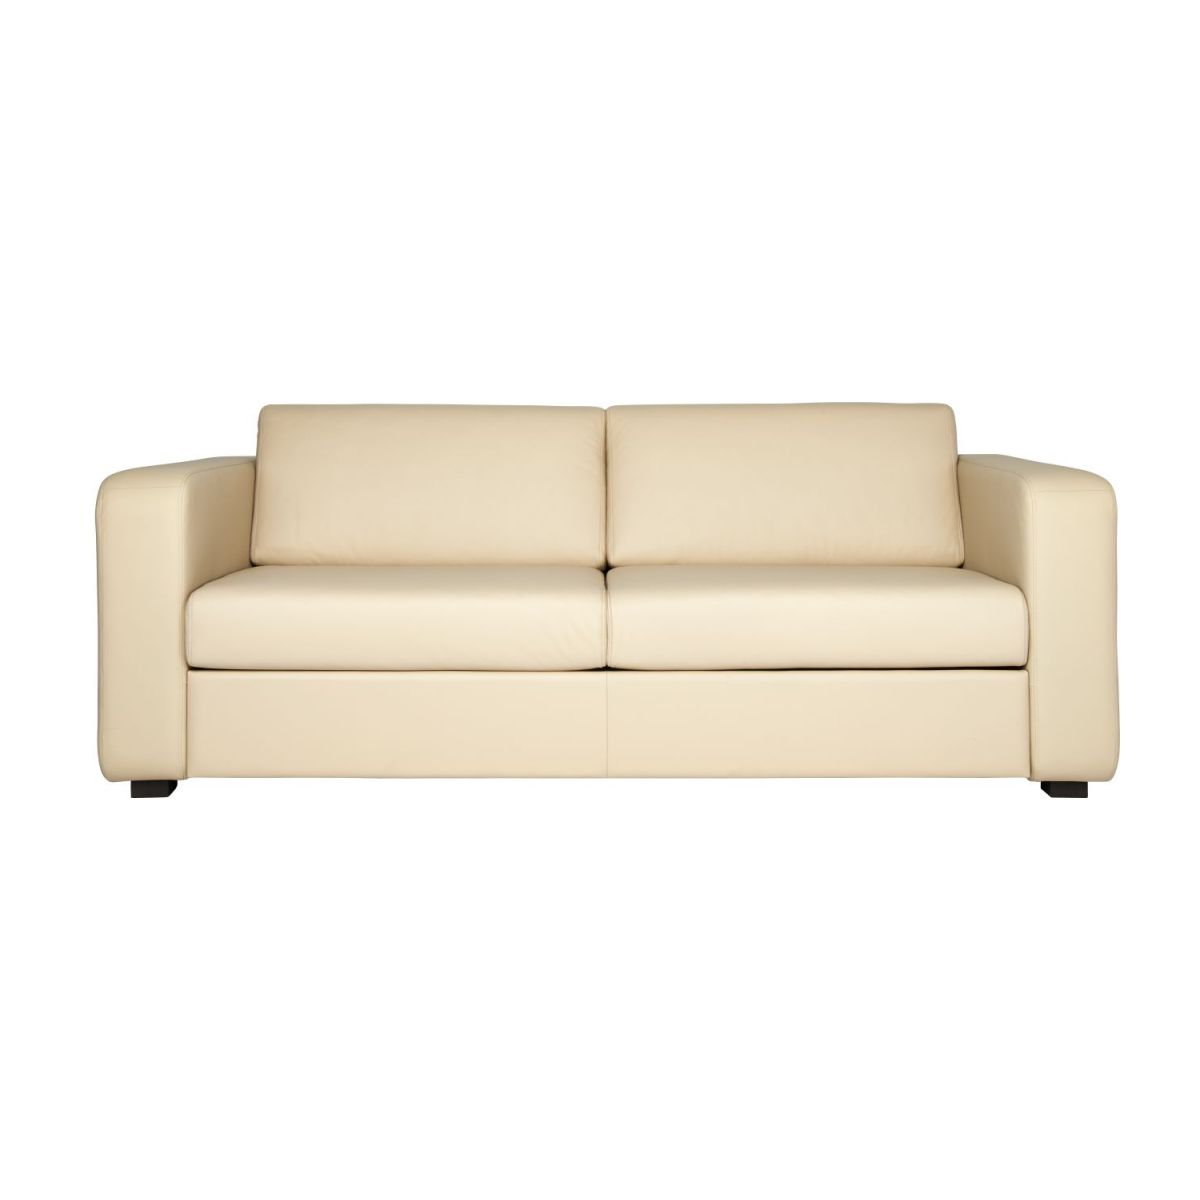 3-person leather sofa n°3